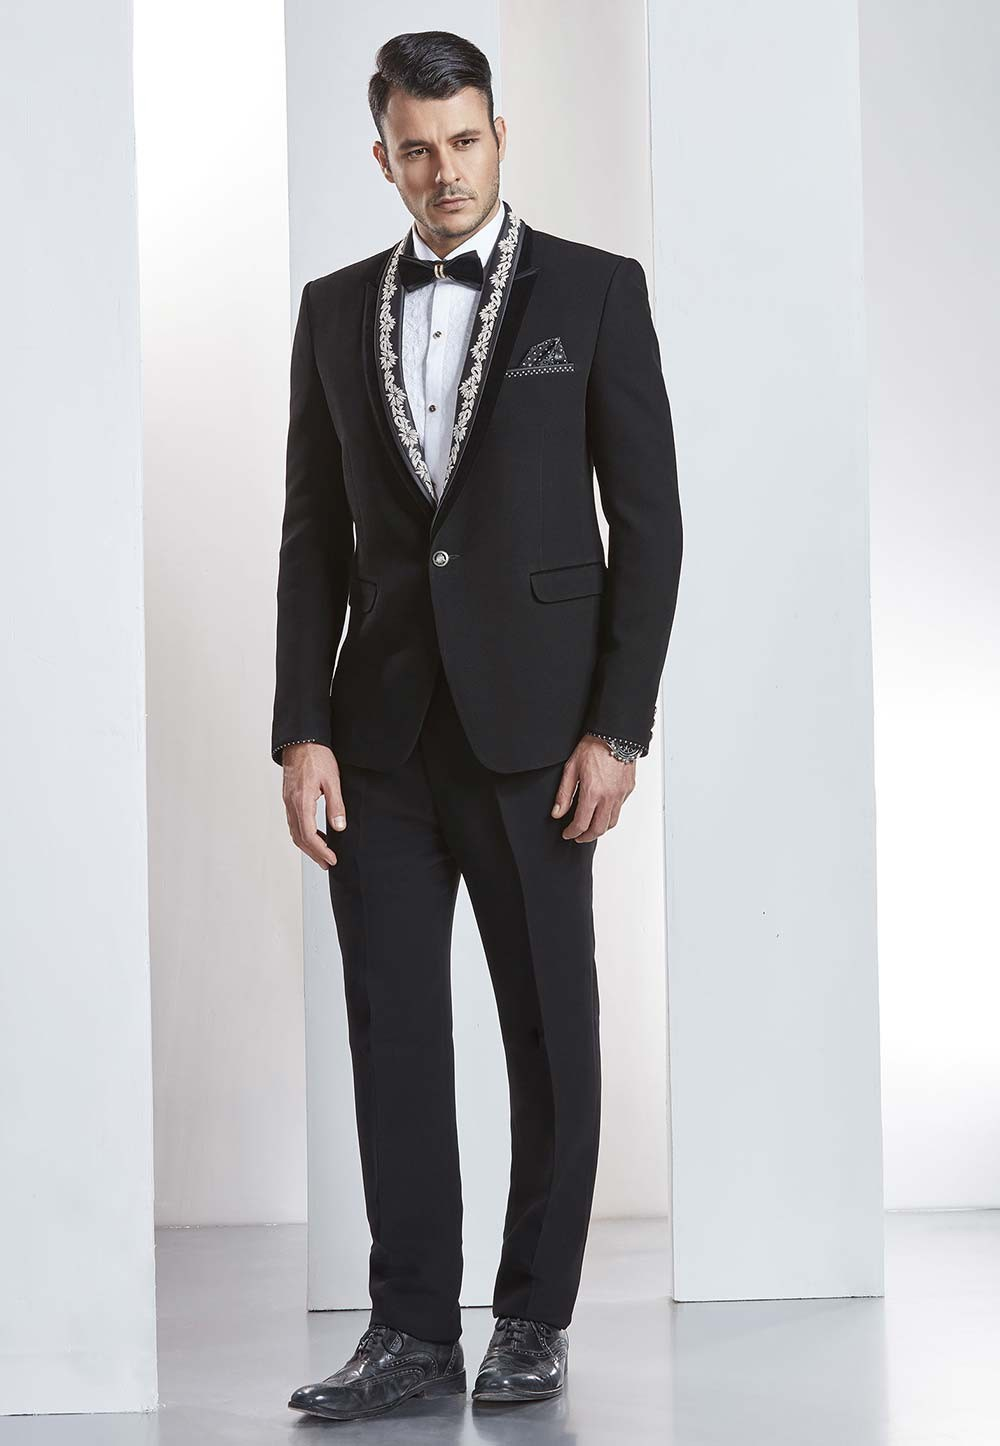 Best wedding suits for mens and boys online